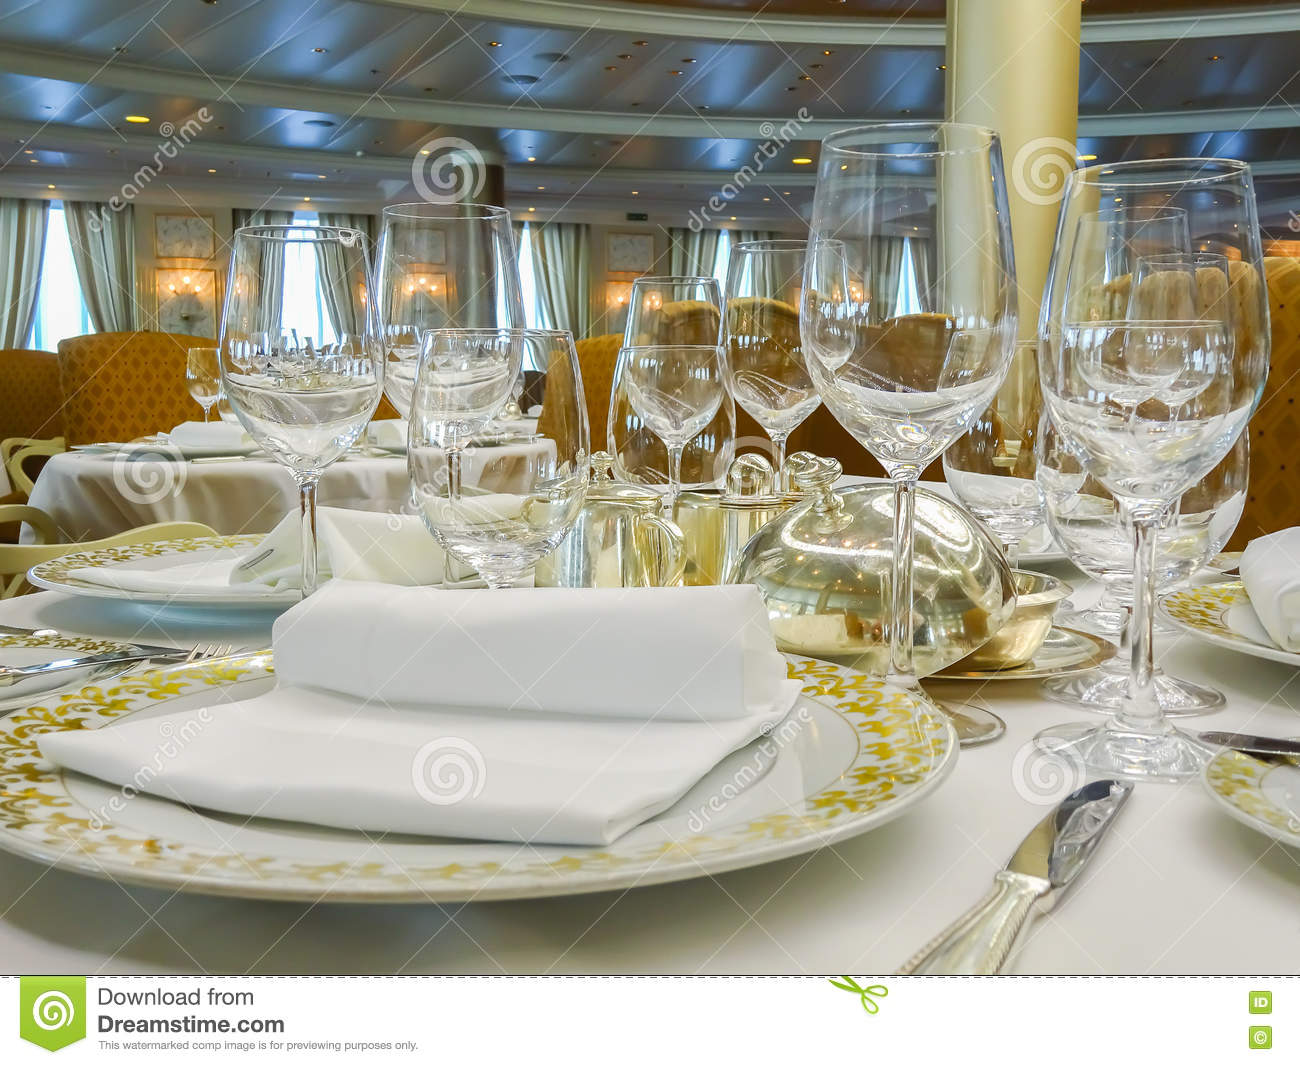 Elegant dinner table setting - Elegant Dinner Setting On Cruise Ship